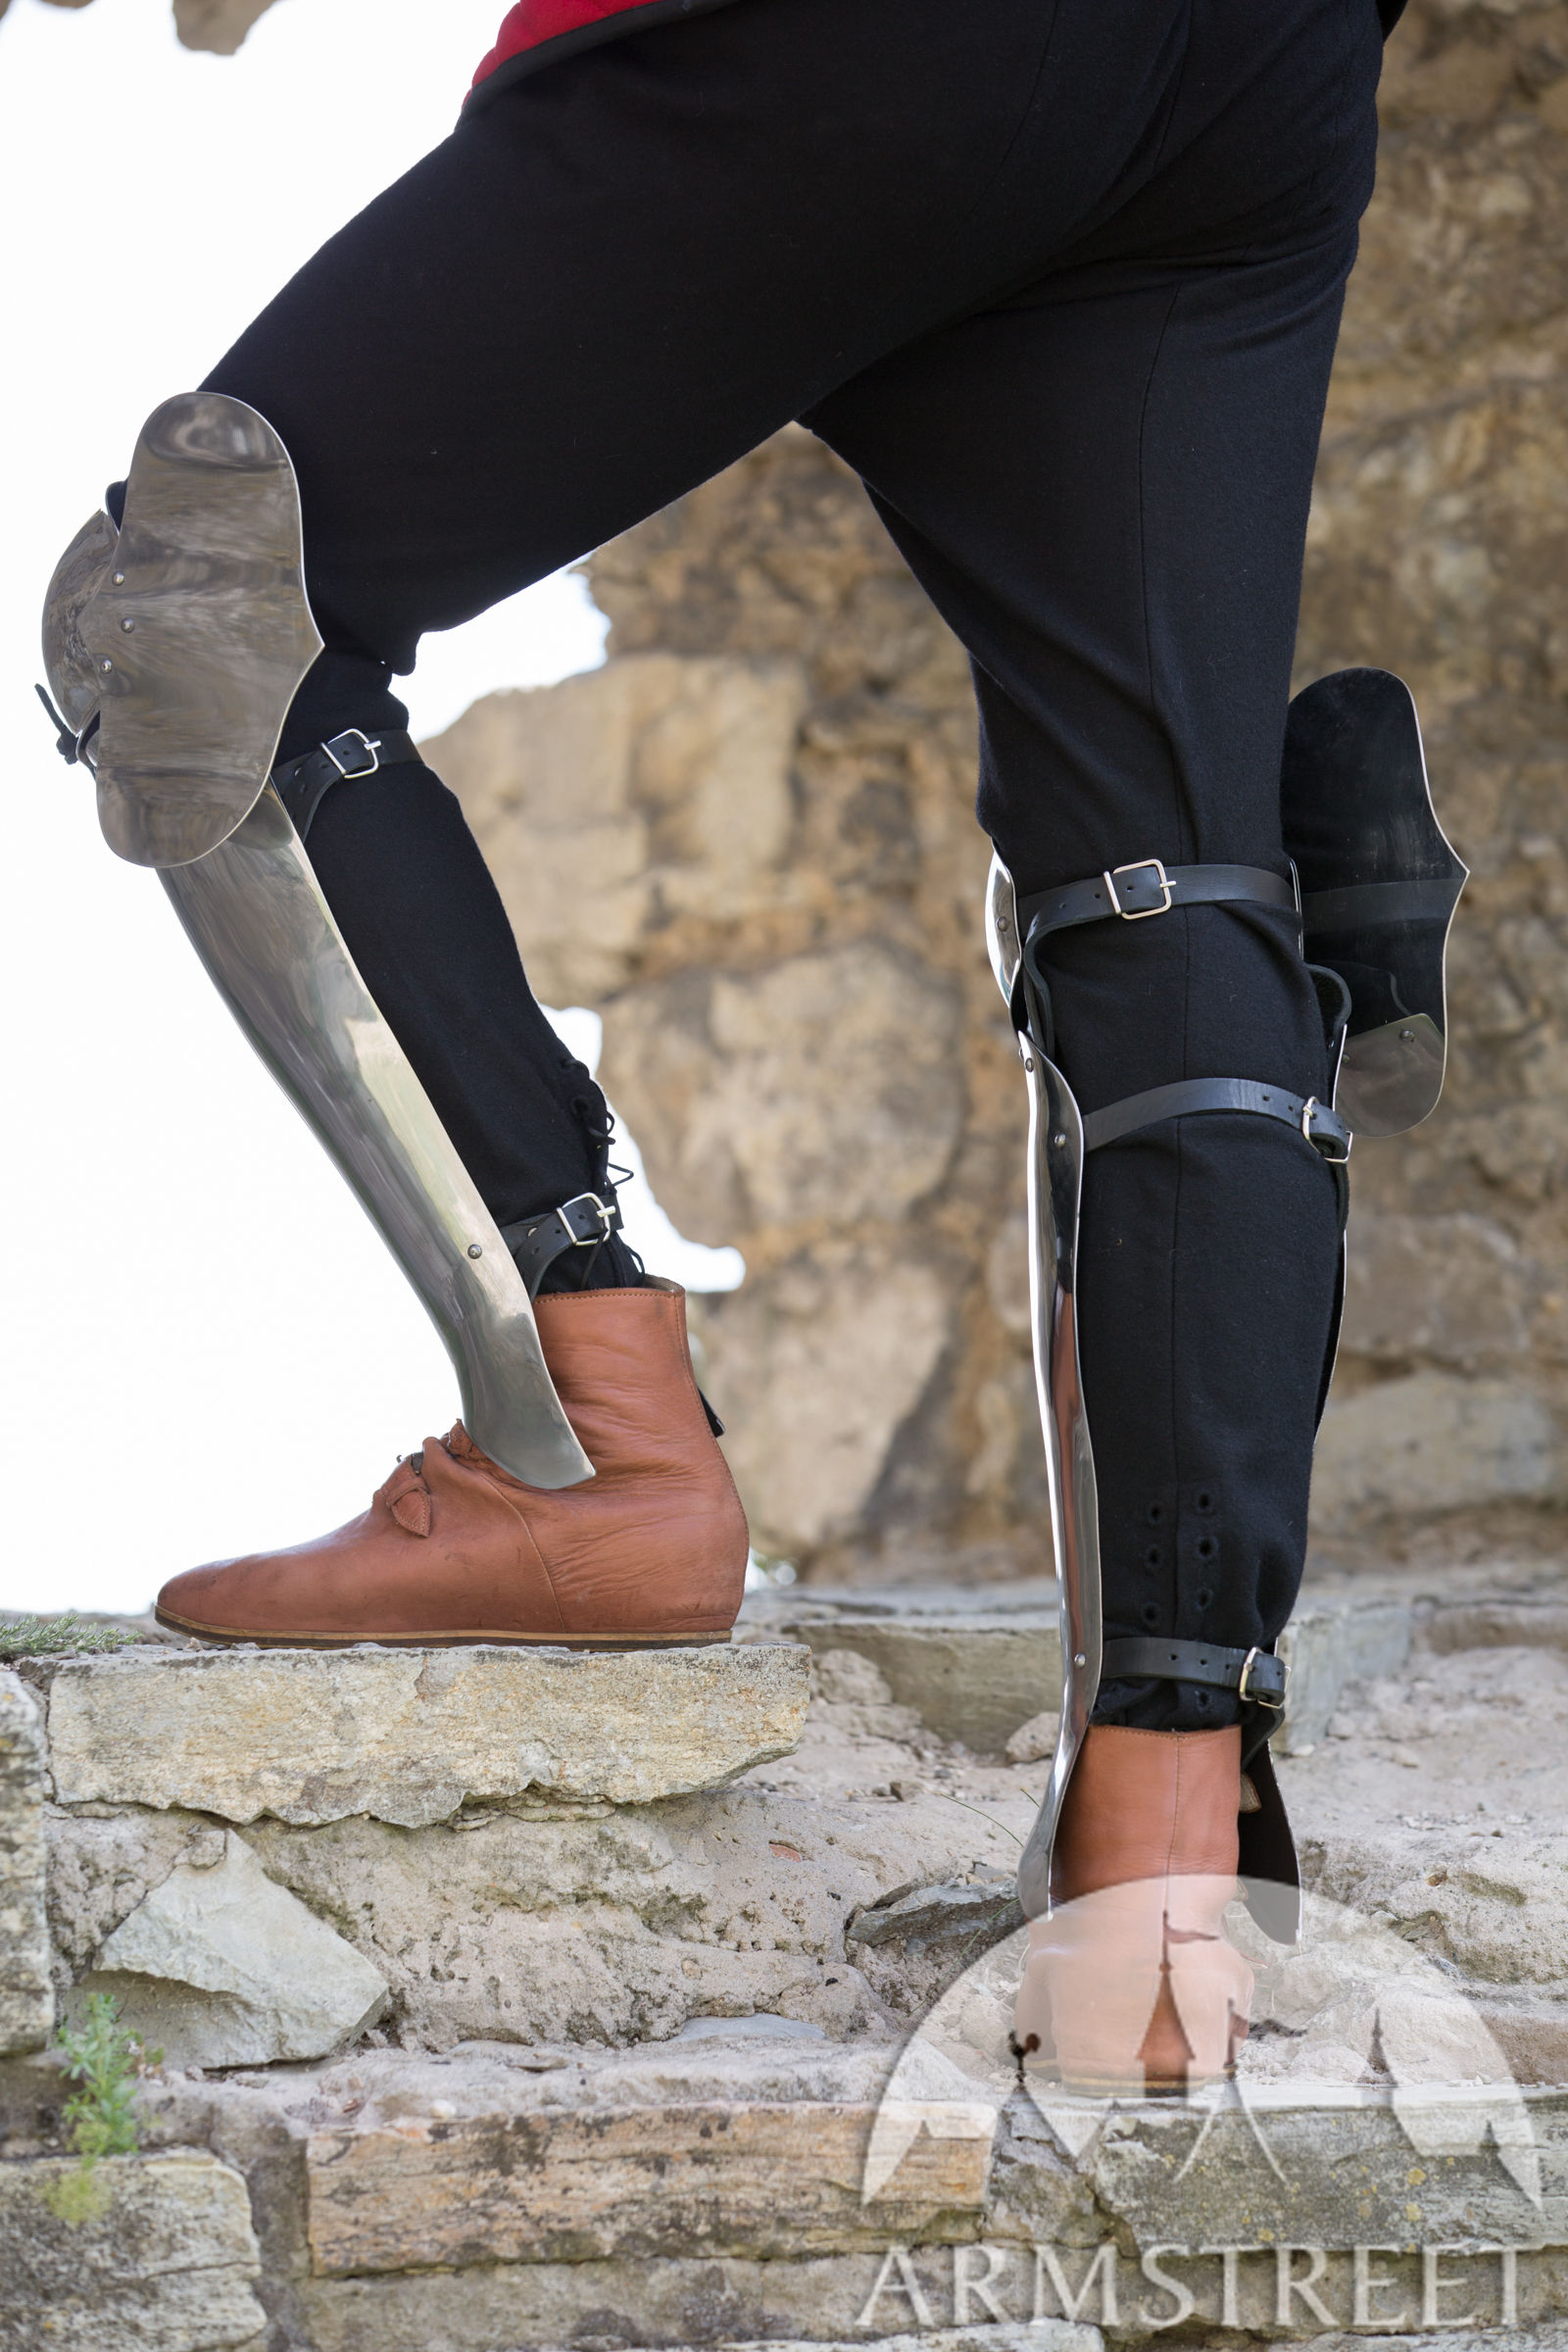 medieval legs armor greaves with knee cops flexible for